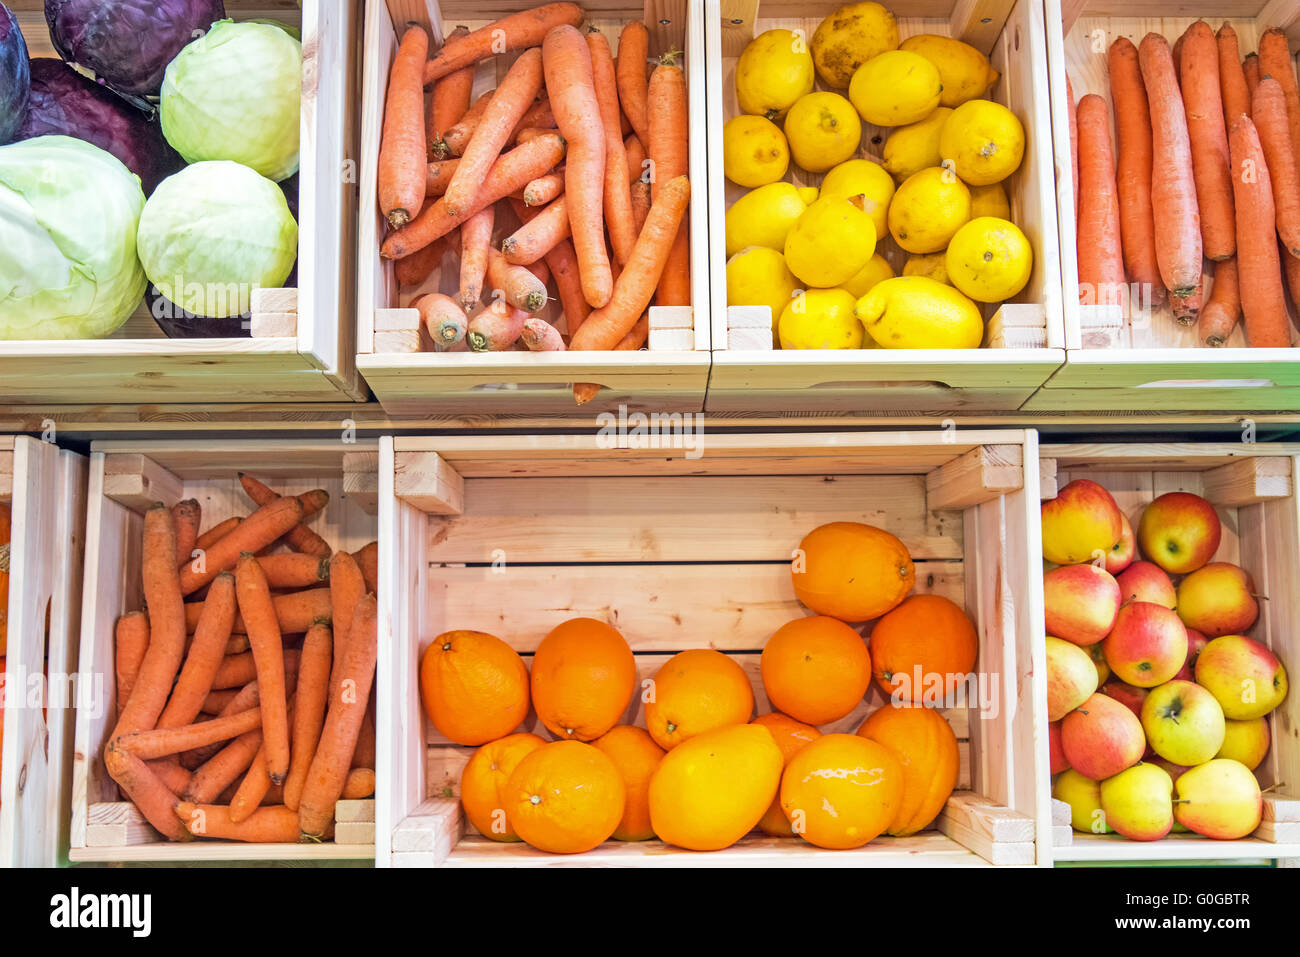 Fruits And Vegetables In Wooden Boxes For Sale At A Market